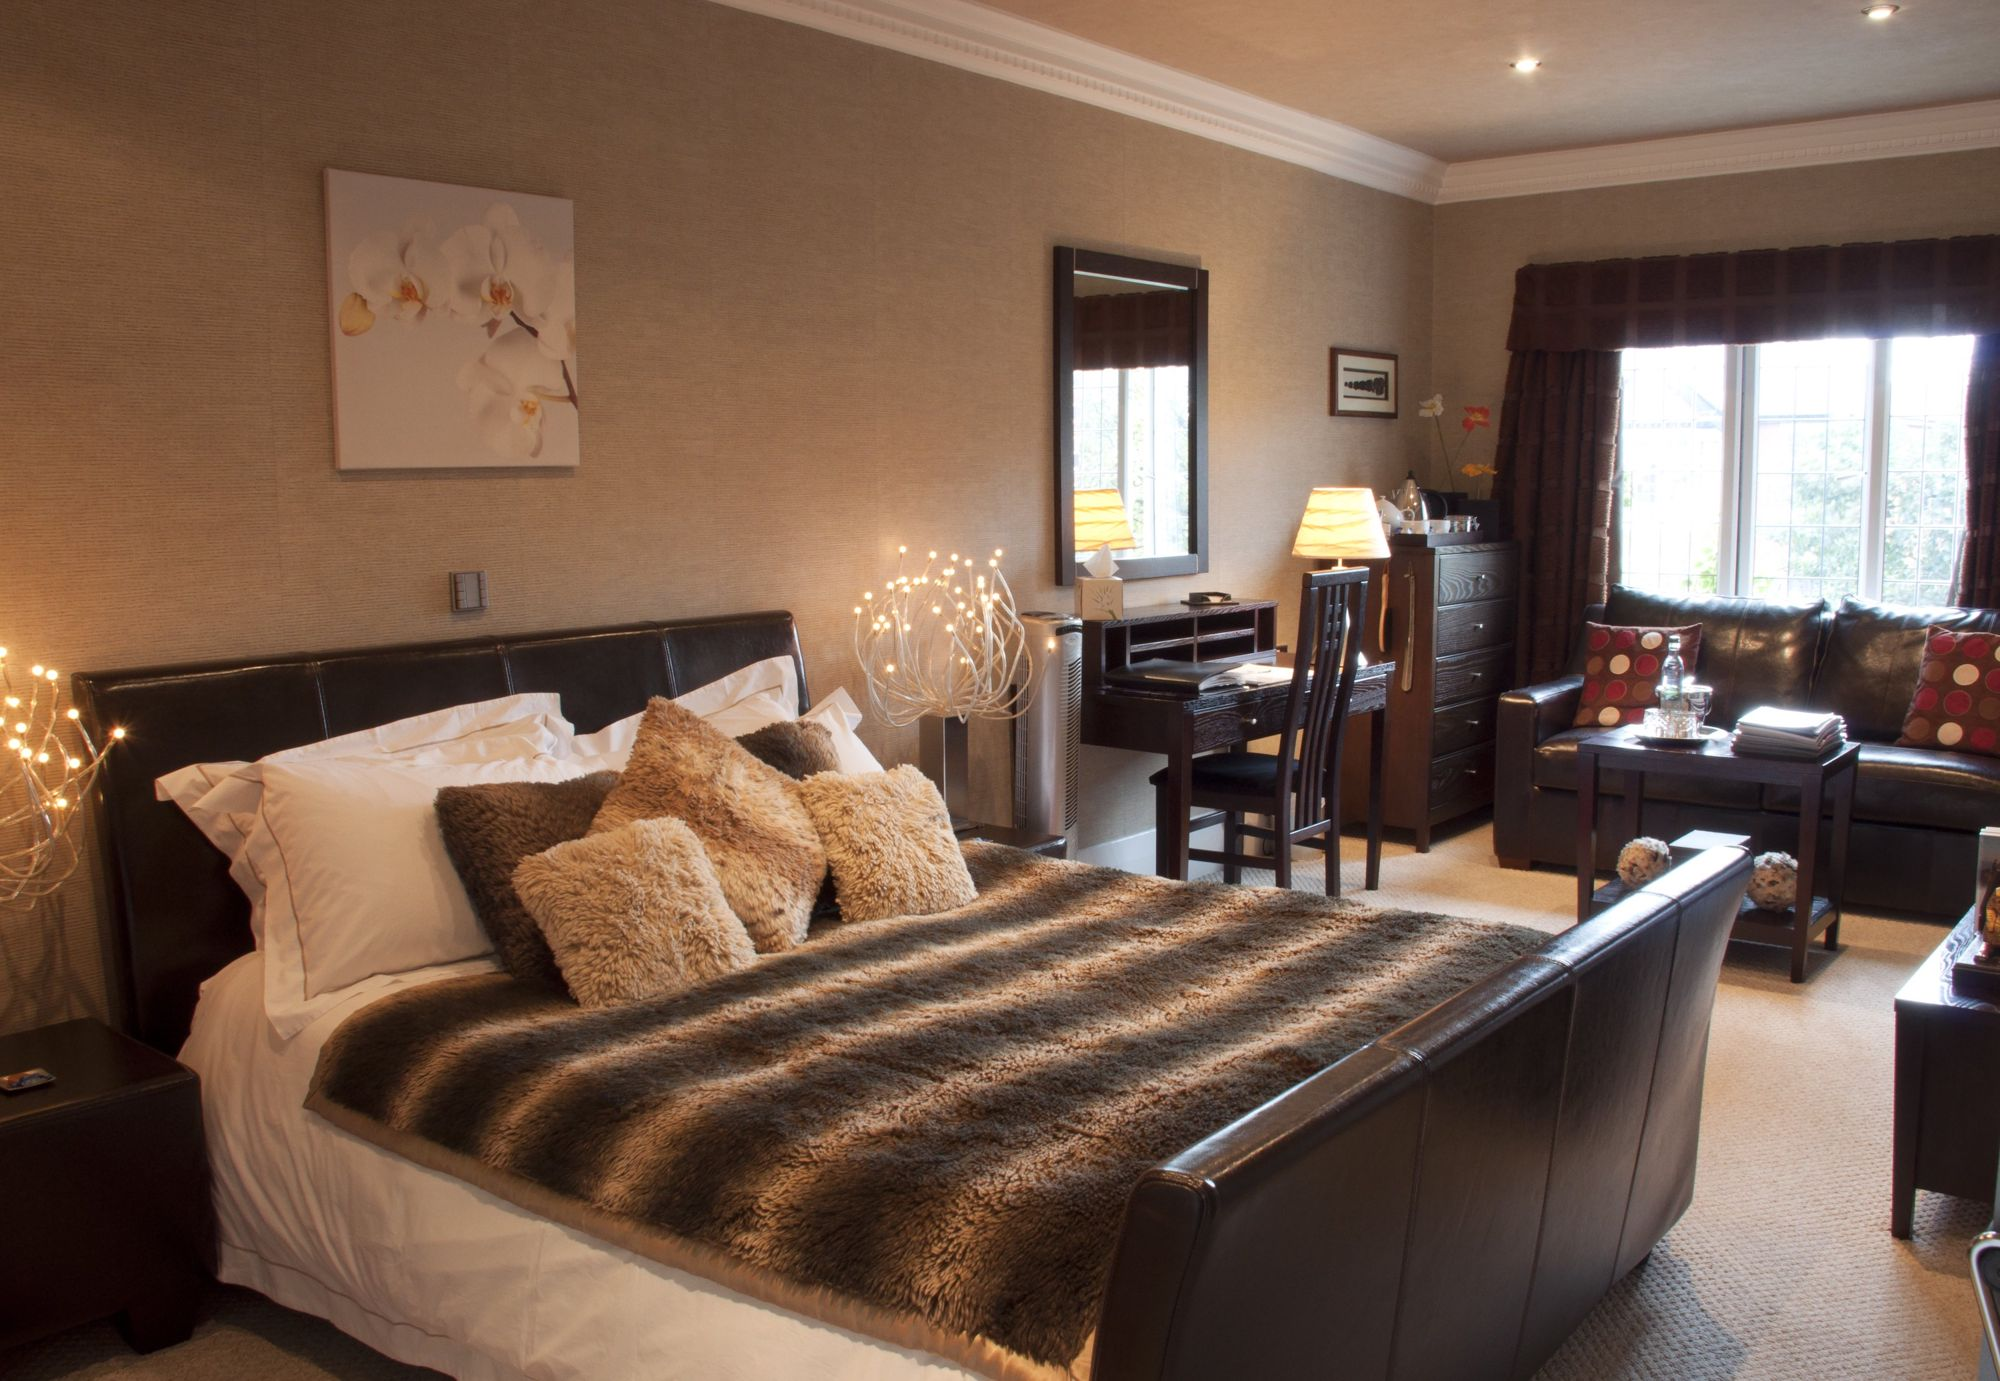 B&Bs in Lancashire holidays at Cool Places